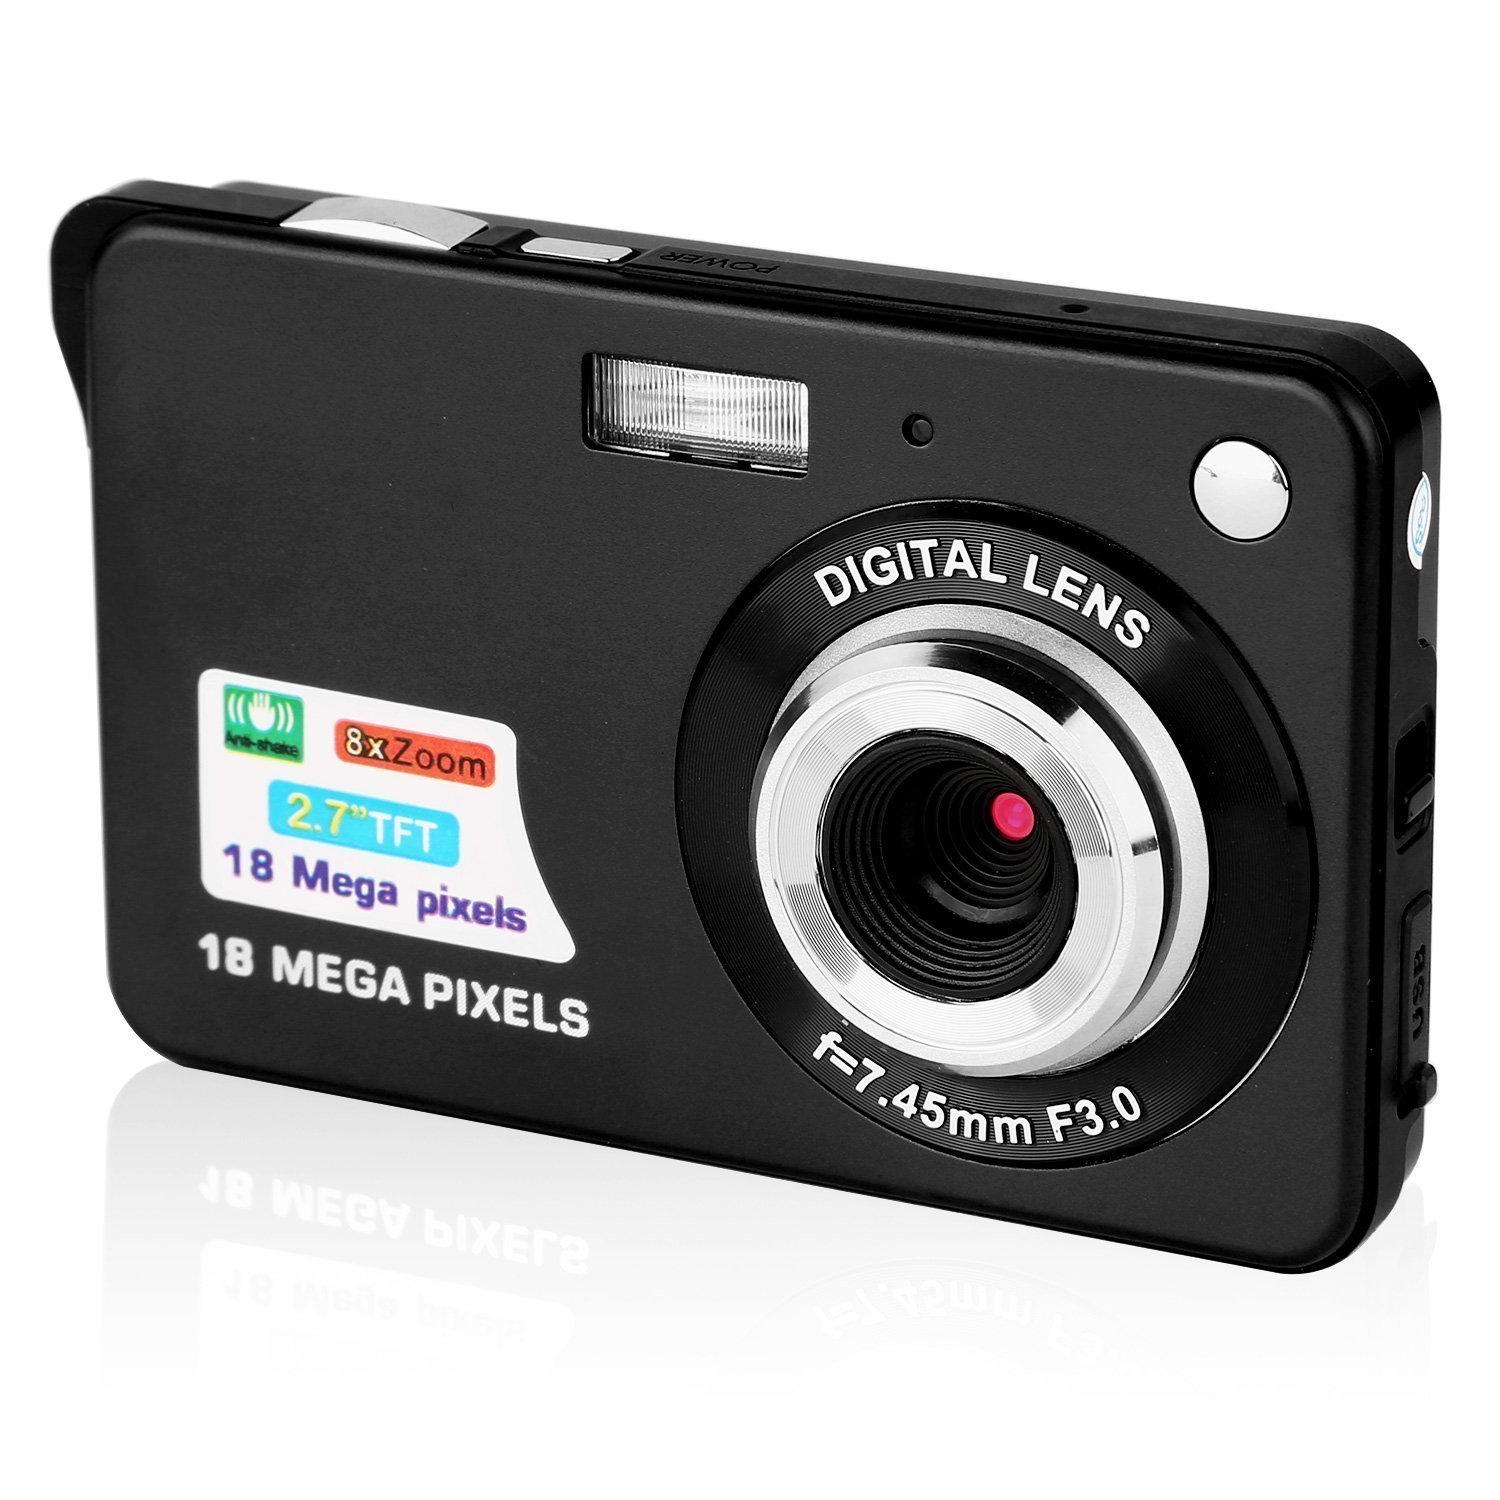 KINGEAR PL001 2.7 inch TFT LCD HD Mini Digital Camera